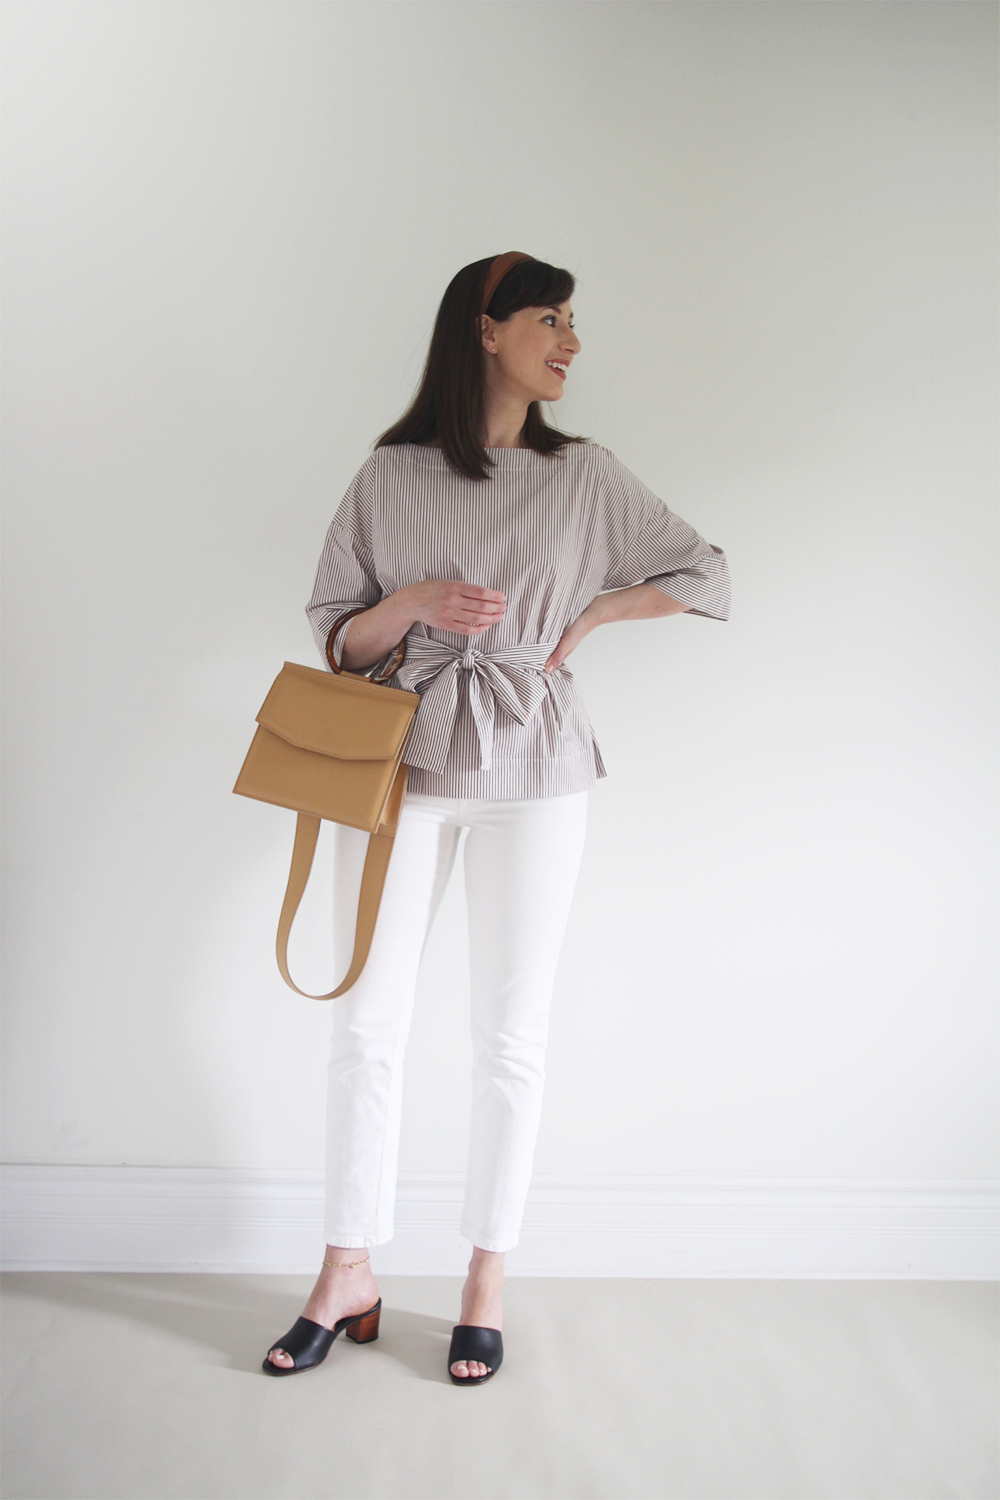 Style Bee - Summer Stripes - For Work - Striped Tie Top + White Jeans + Mules + Leather Headband + Structured Bag